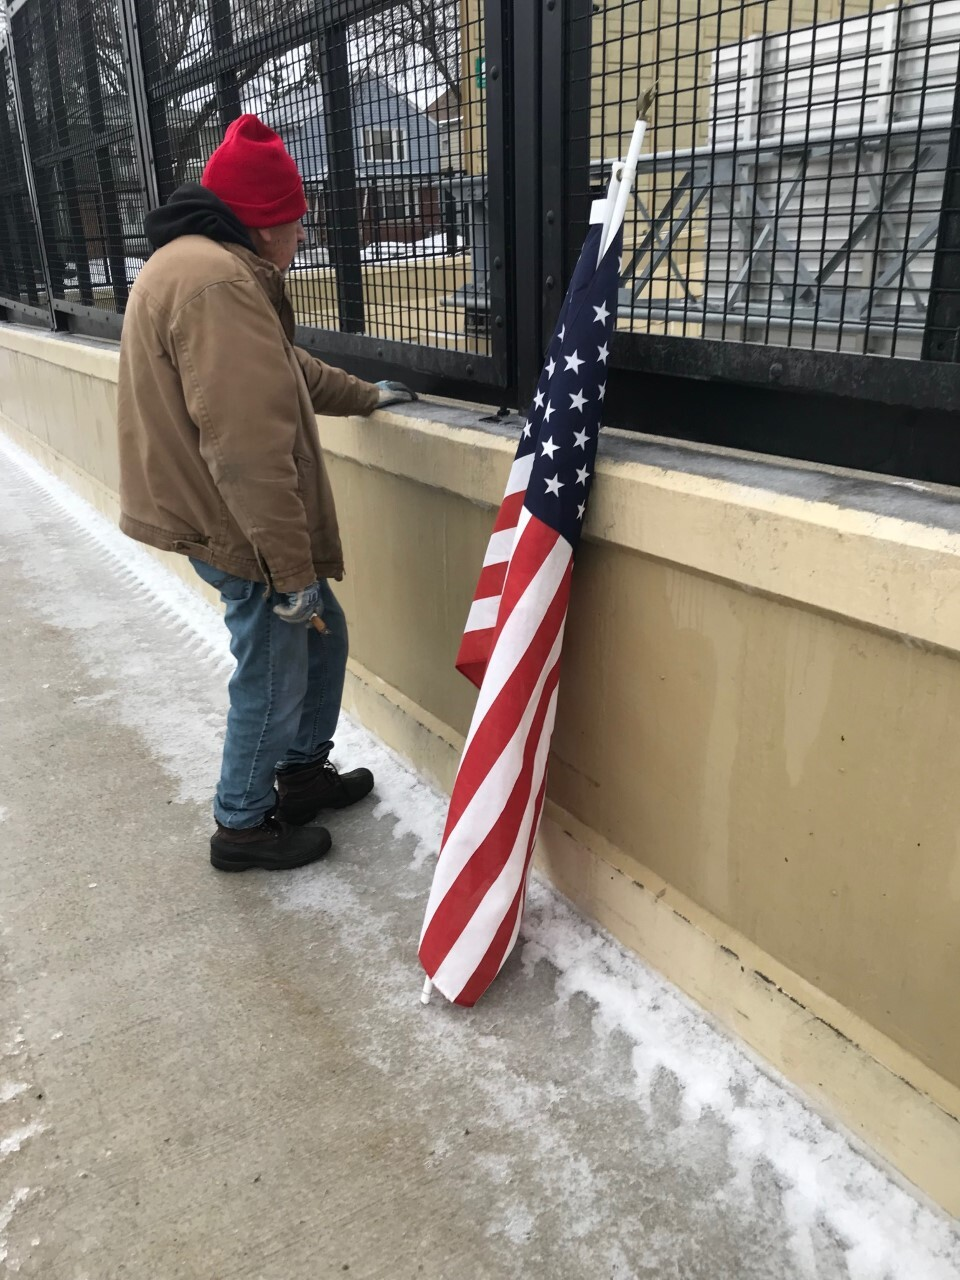 A man waits to honor the fallen officer before for the procession on 92nd Street.